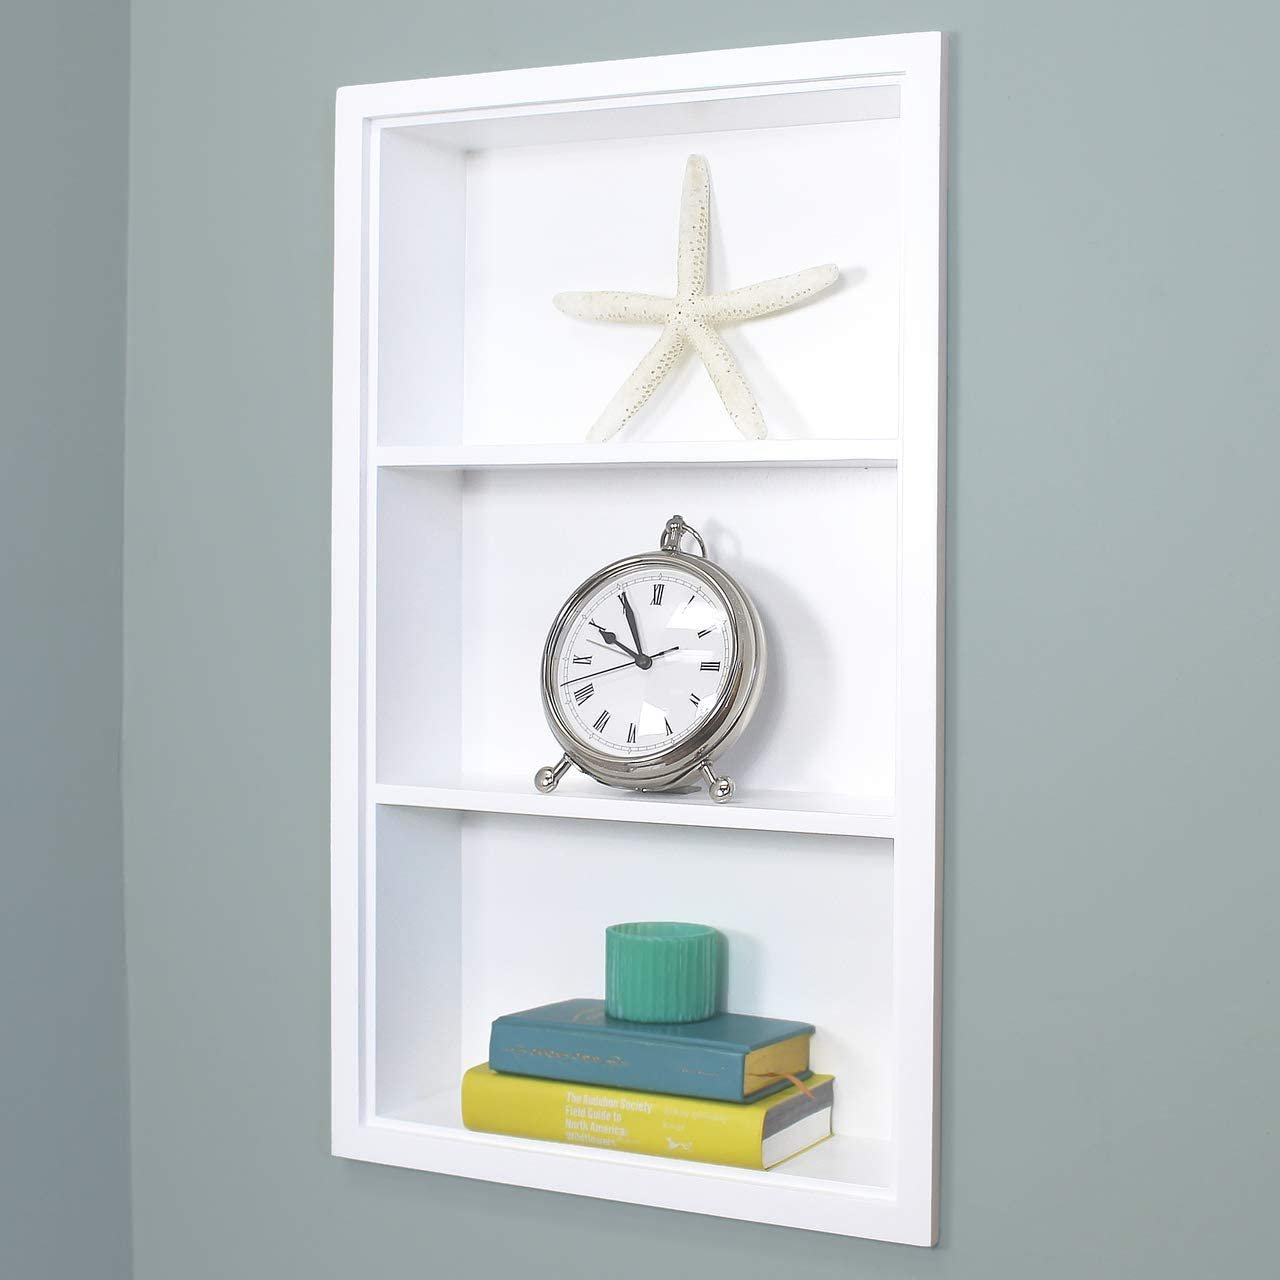 Fox Hollow Furnishings 14×24 Recessed White Sloane Wall Niche w Plain Back